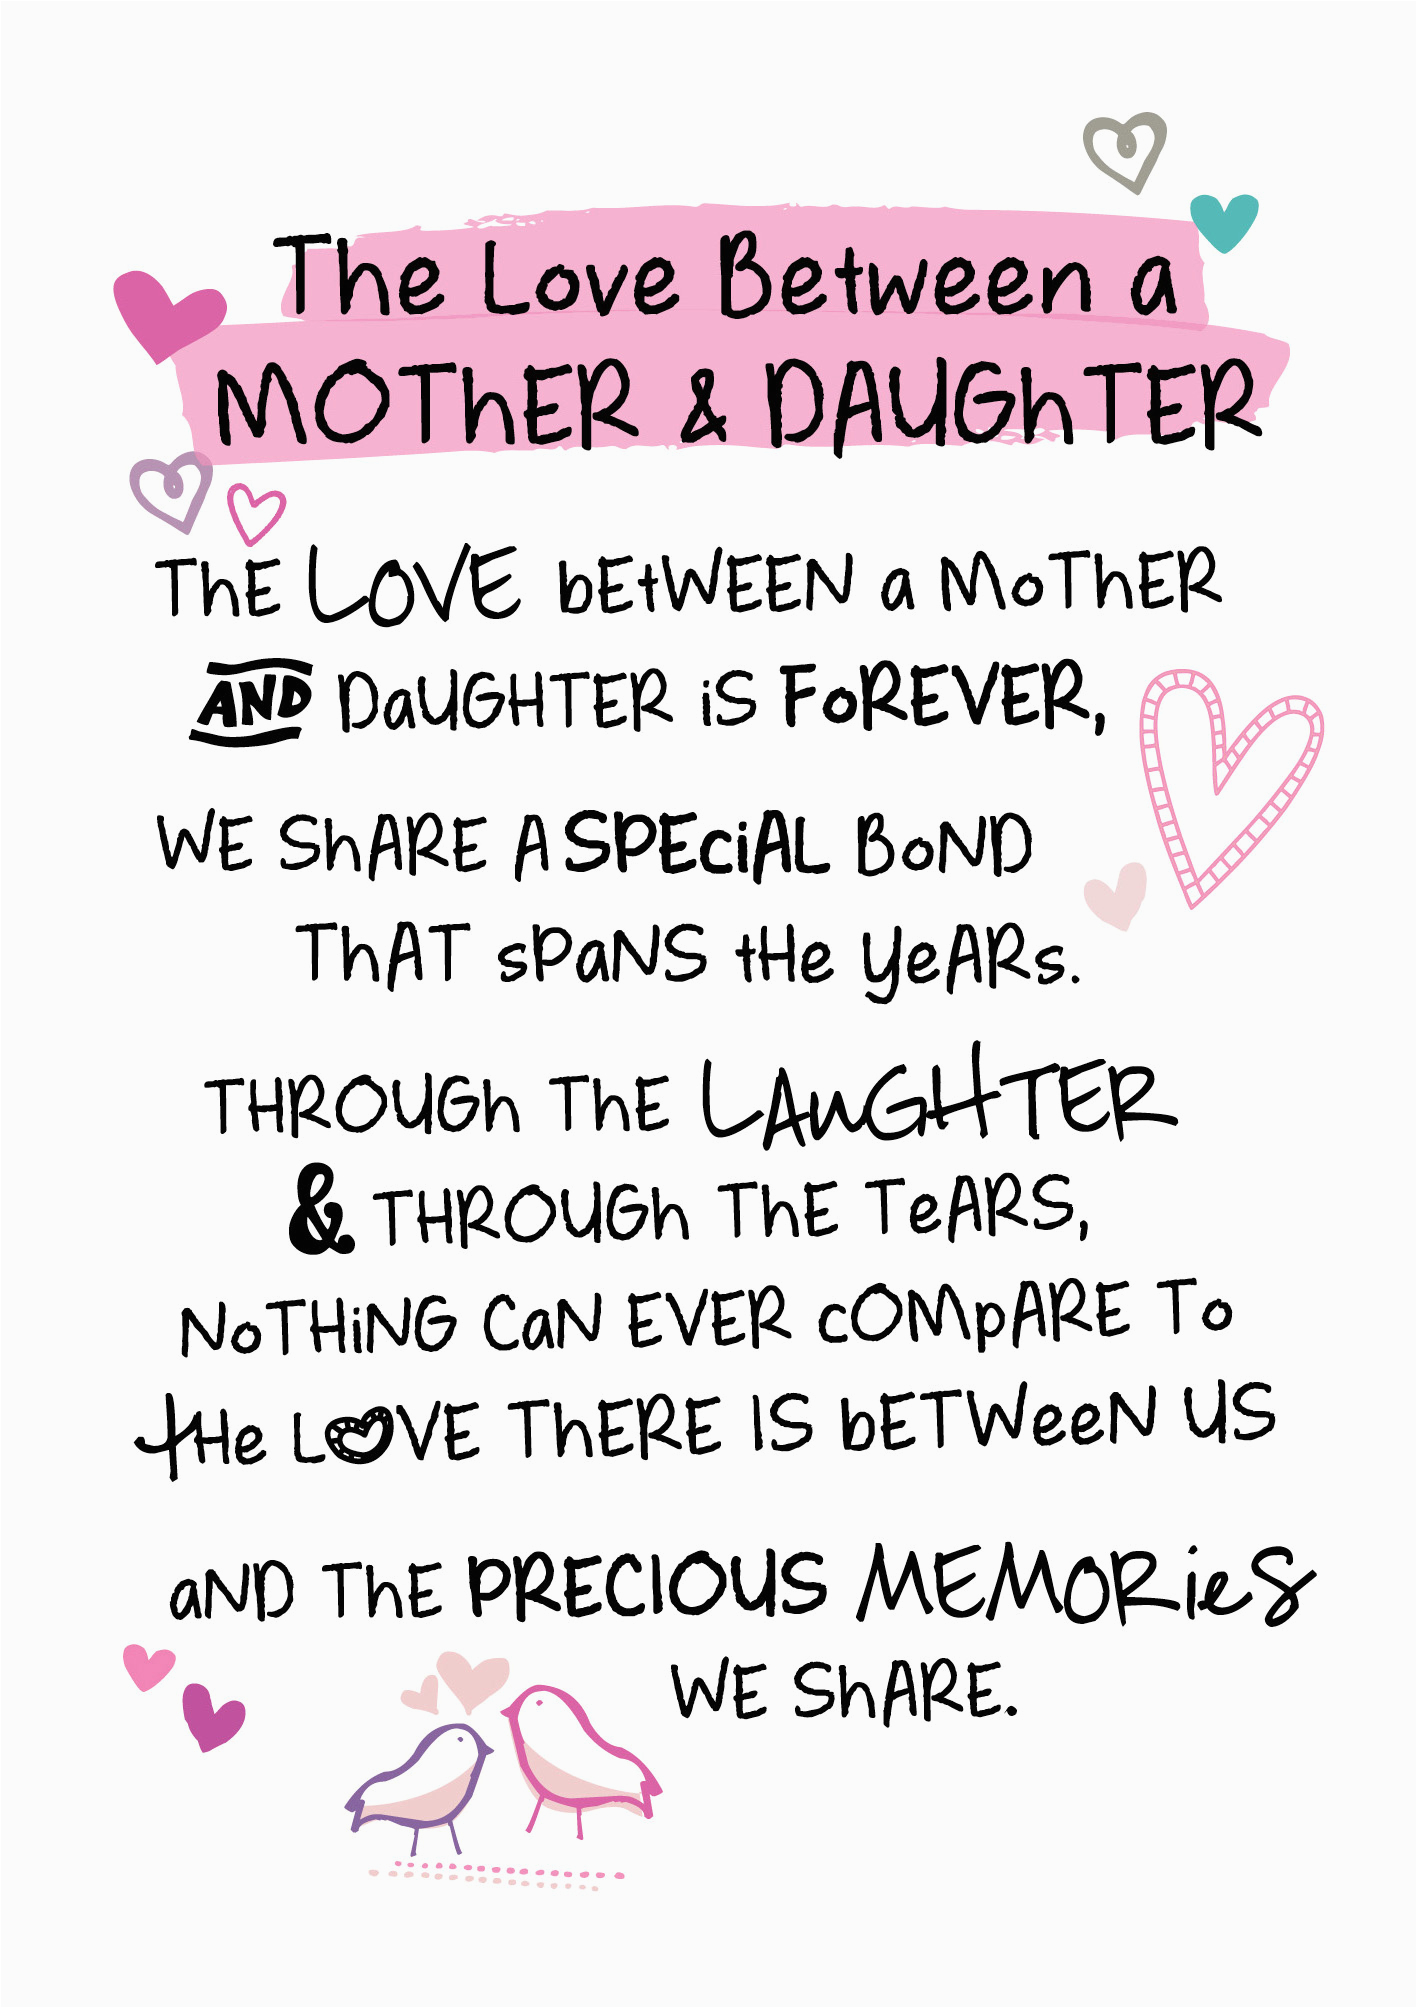 mother daughter love inspired words greeting card blank